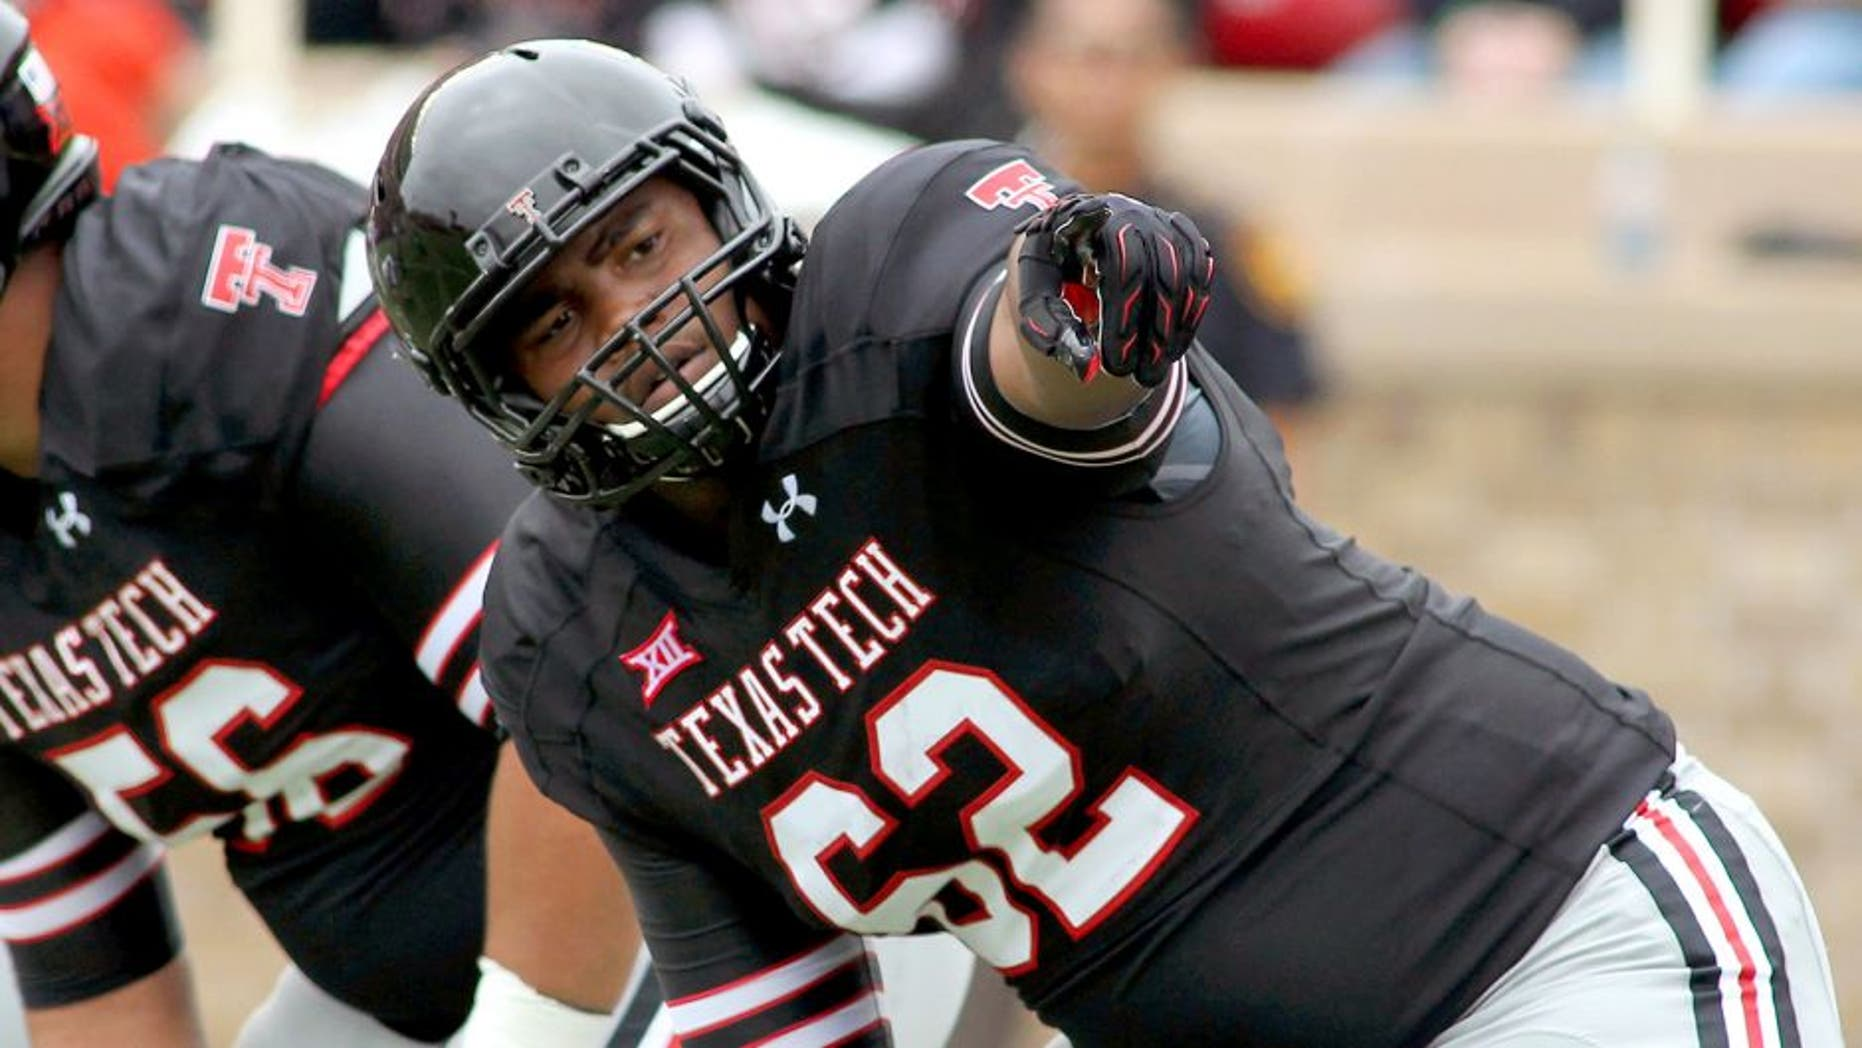 Sep 13, 2014; Lubbock, TX, USA; Texas Tech Red Raiders offensive tackle Le'Raven Clark (62) during the game with the Arkansas Razorbacks at Jones AT&T Stadium. Mandatory Credit: Michael C. Johnson-USA TODAY Sports